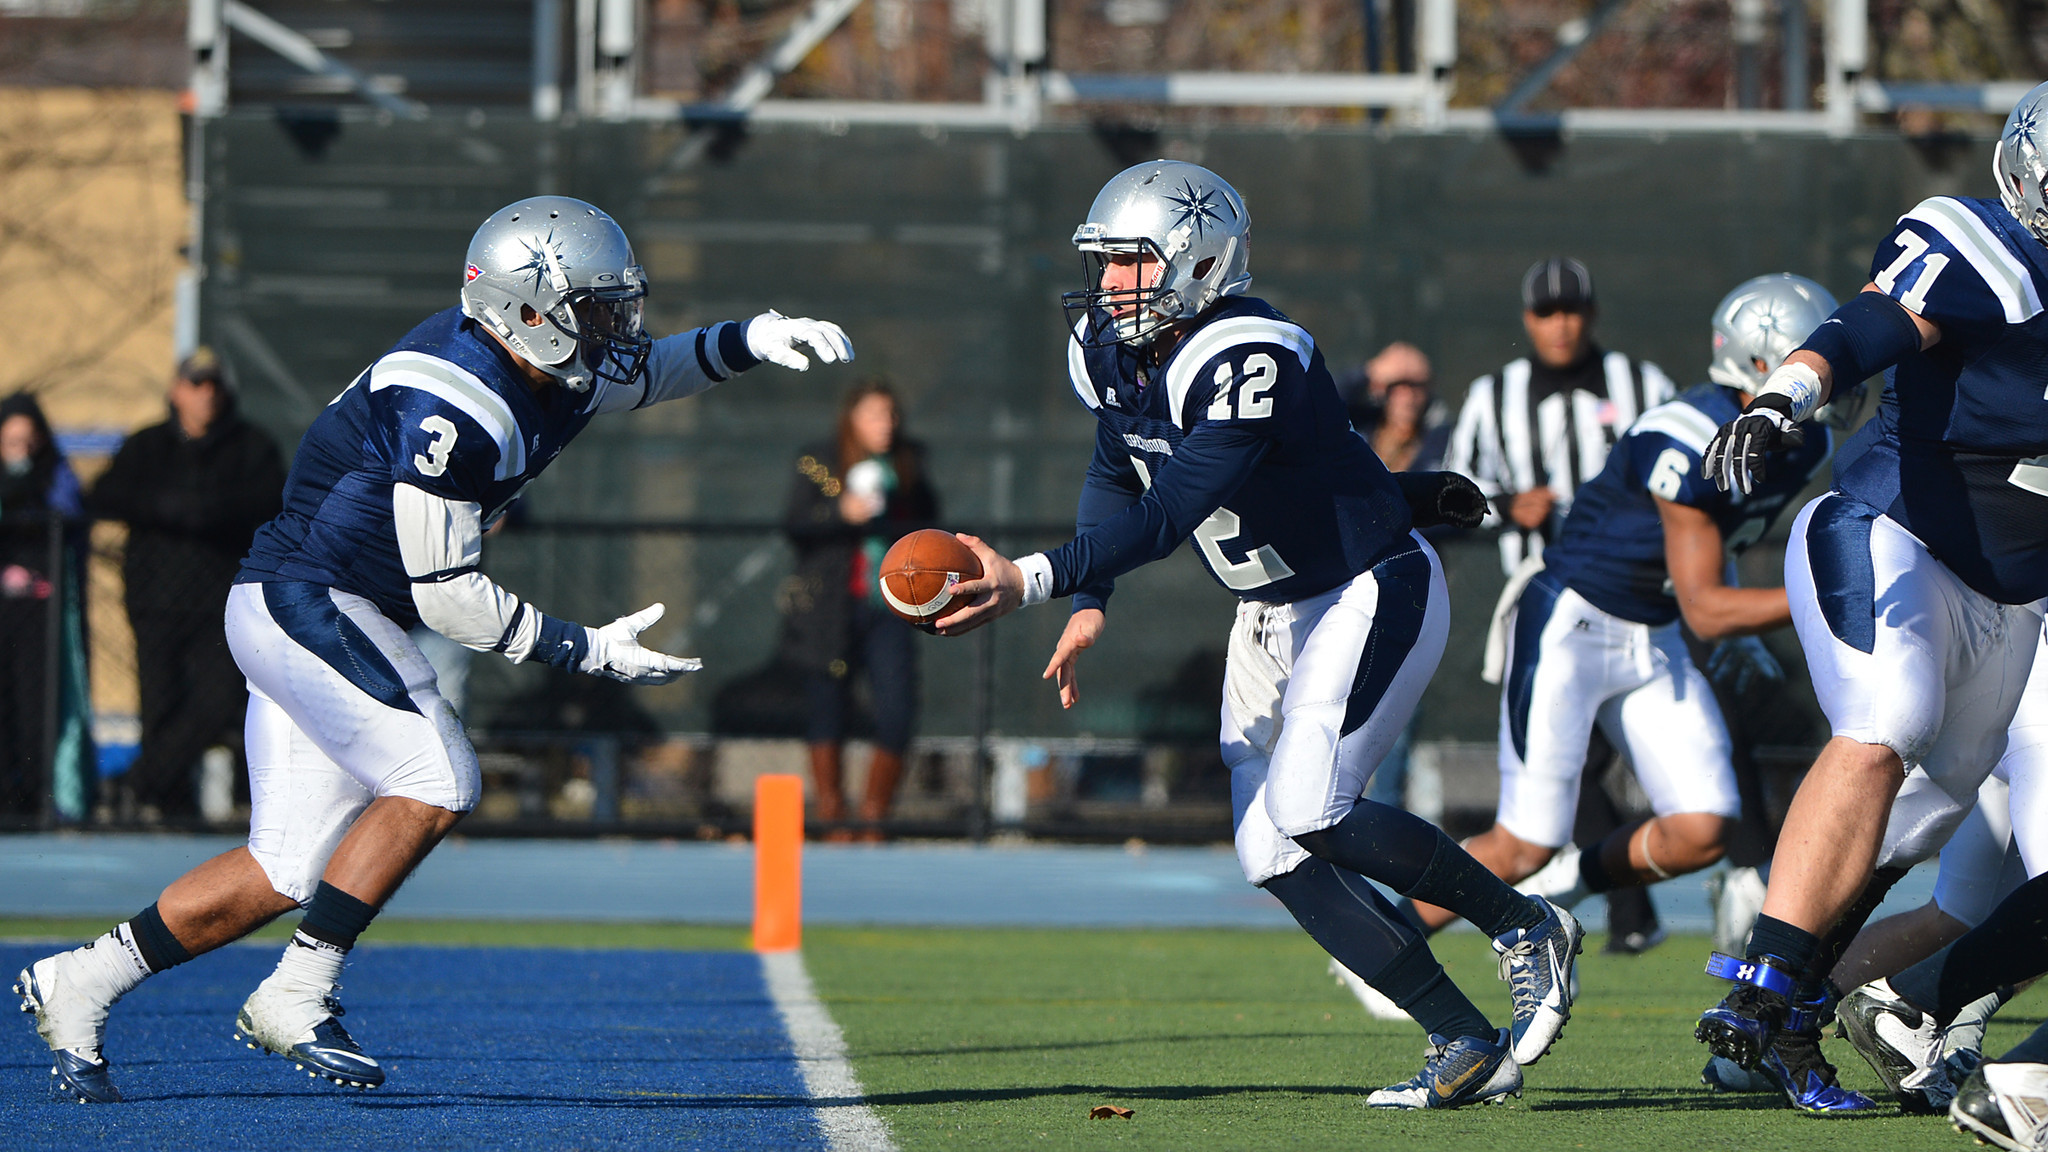 moravian defeats gettysburg 35-32 - the morning call